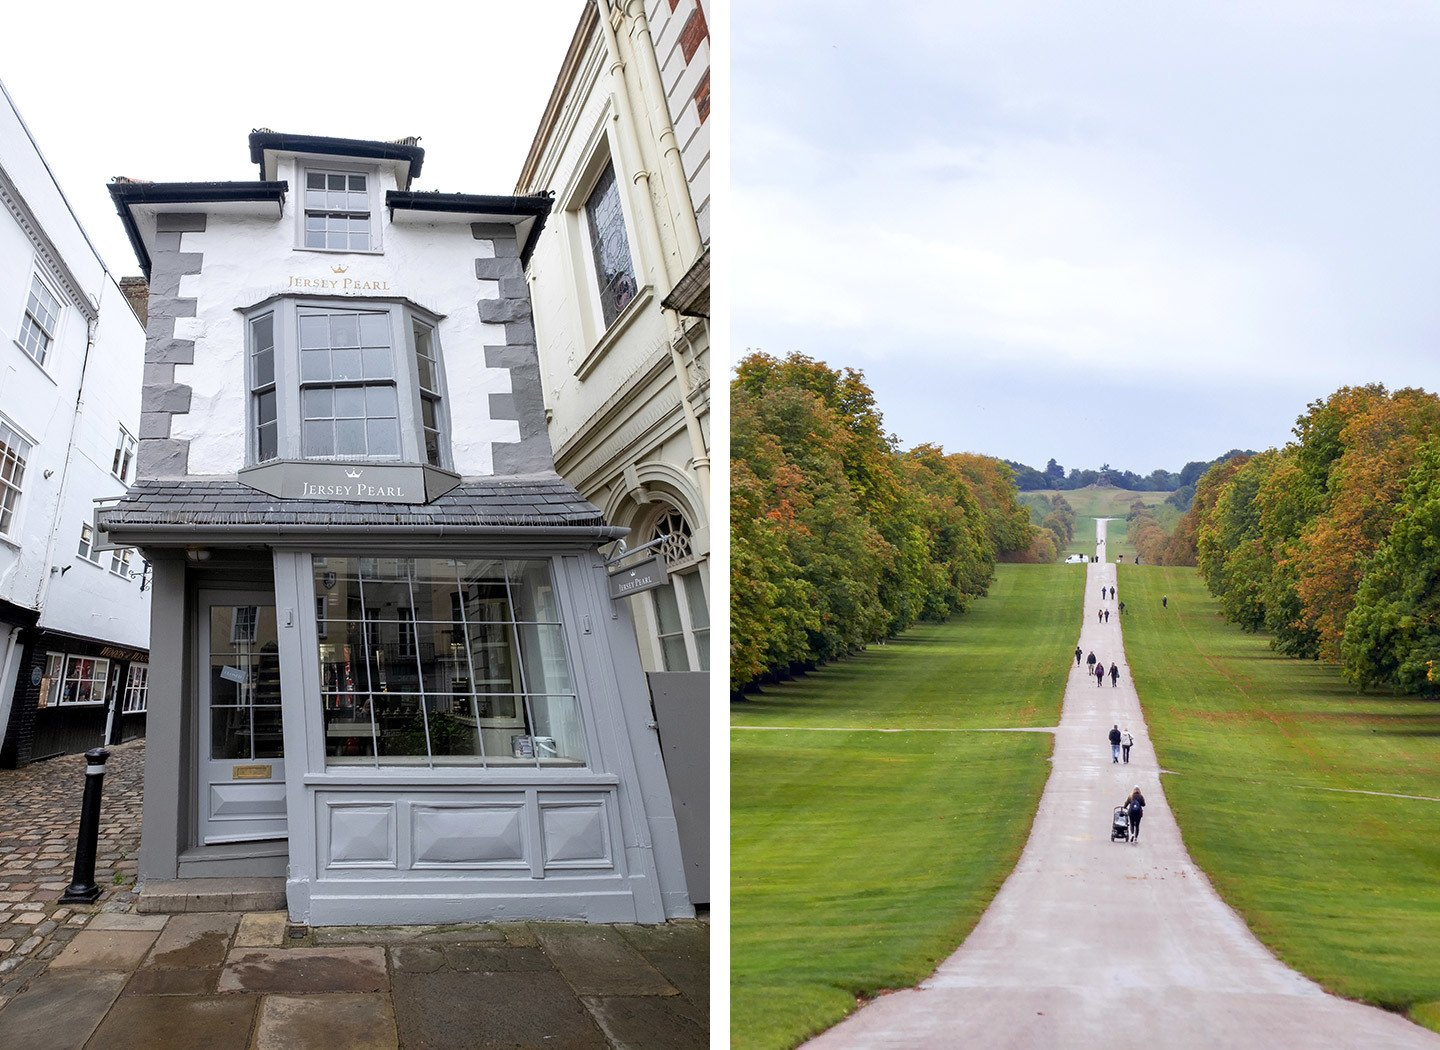 A quirky crooked house and the Long Walk in Windsor Great Park